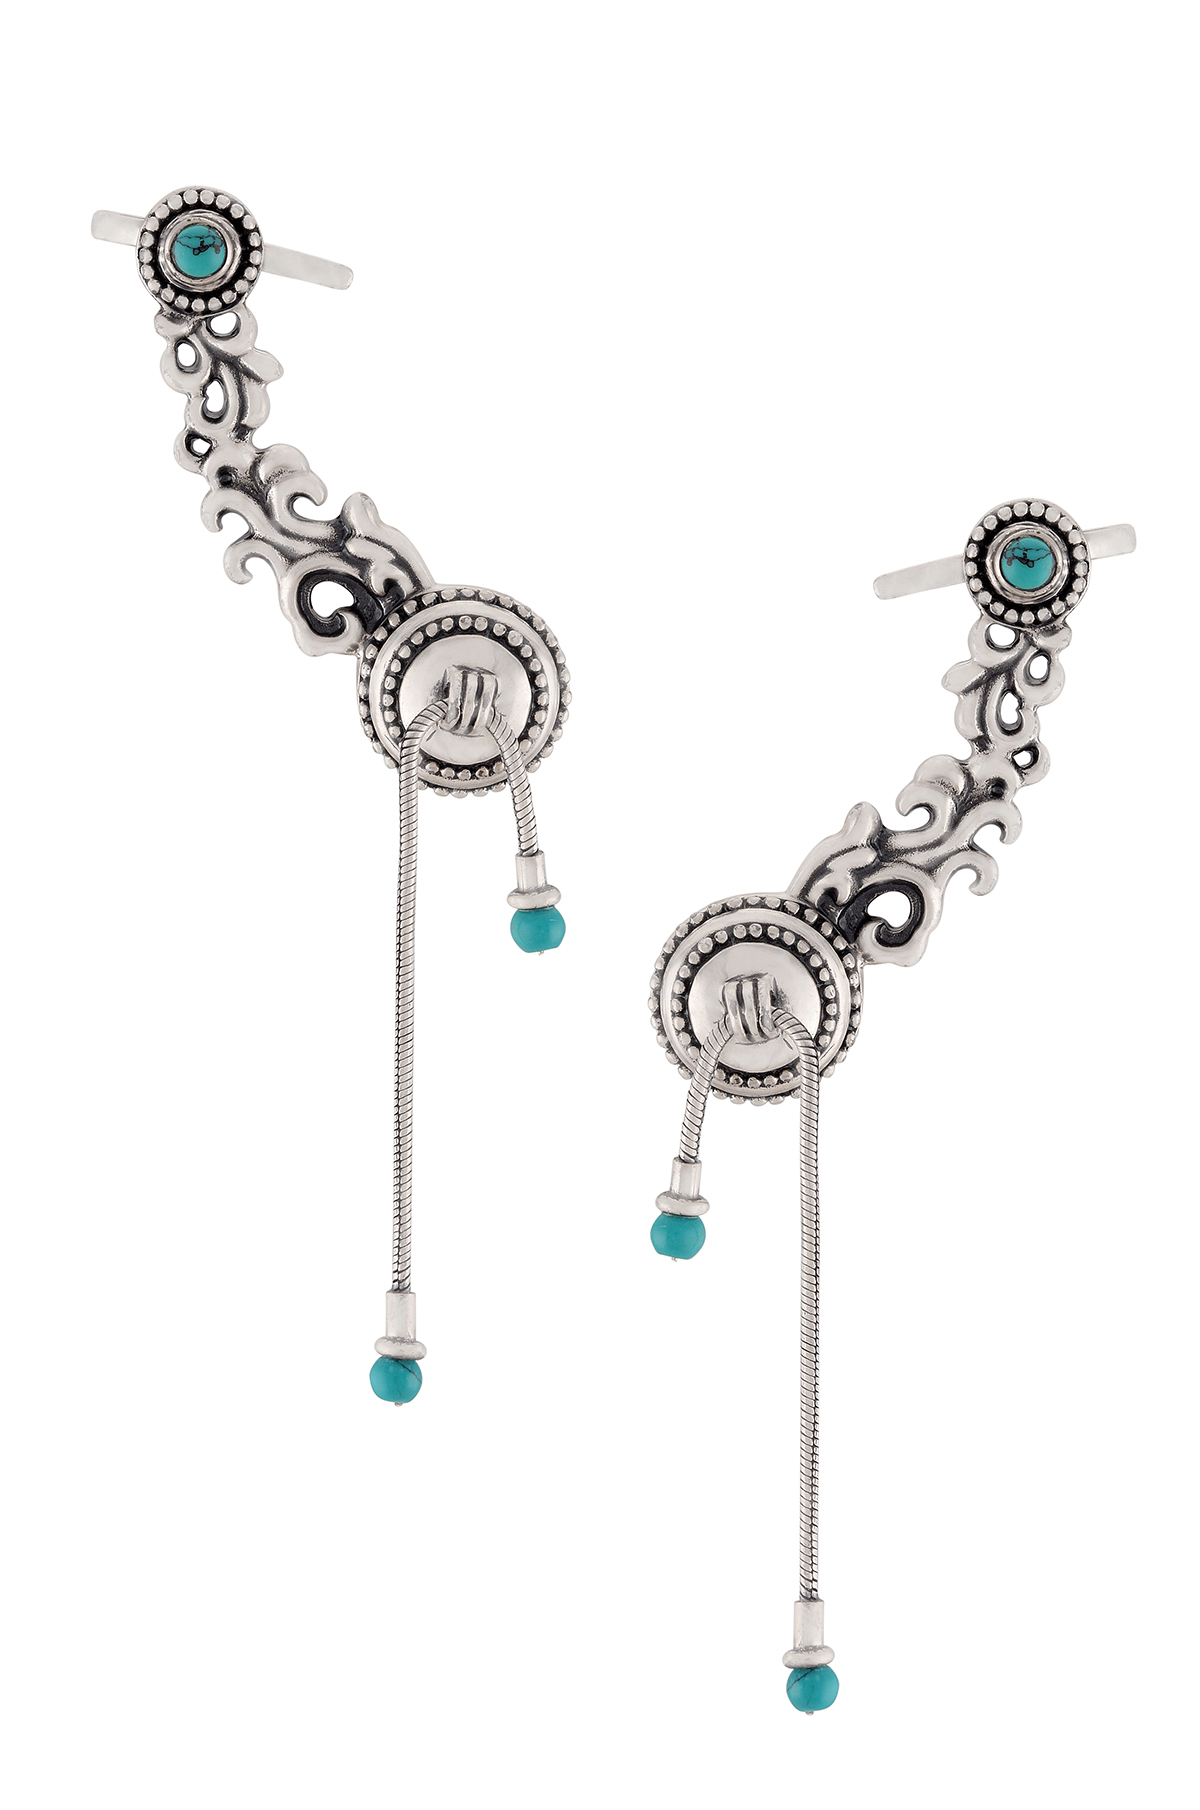 Silver Oxidised Intricate Floral Turquoise Ear Cuff